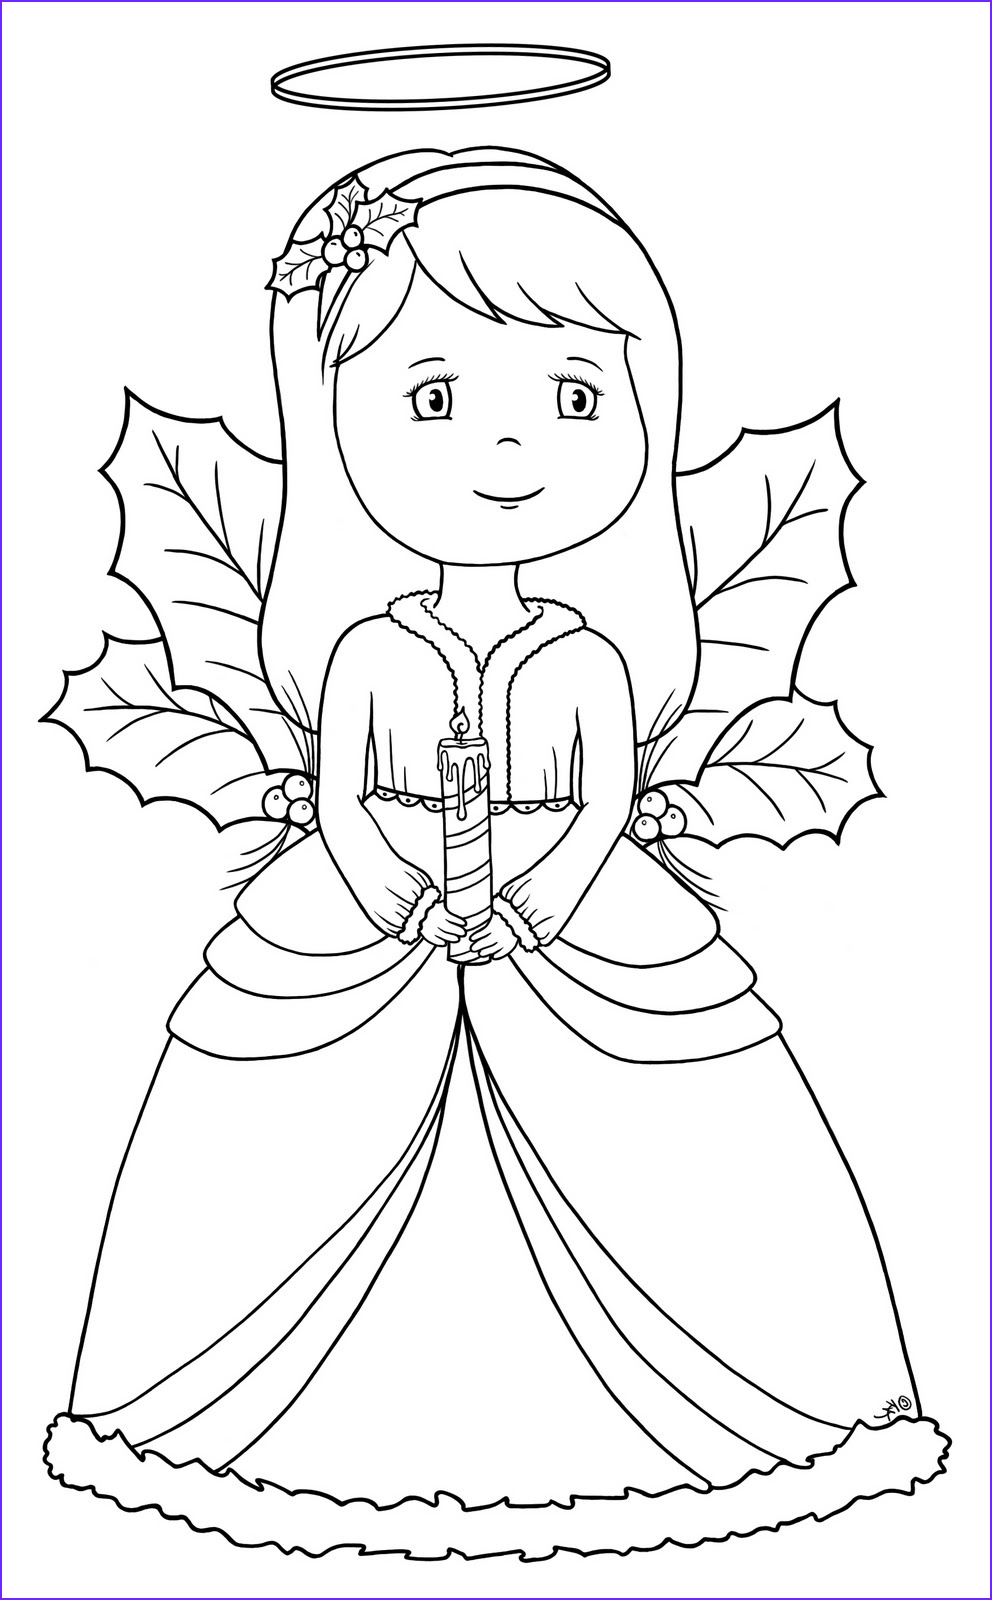 Christmas Angel Coloring Pages Beautiful Collection 1000 Images About Coloring Pages On Pinterest